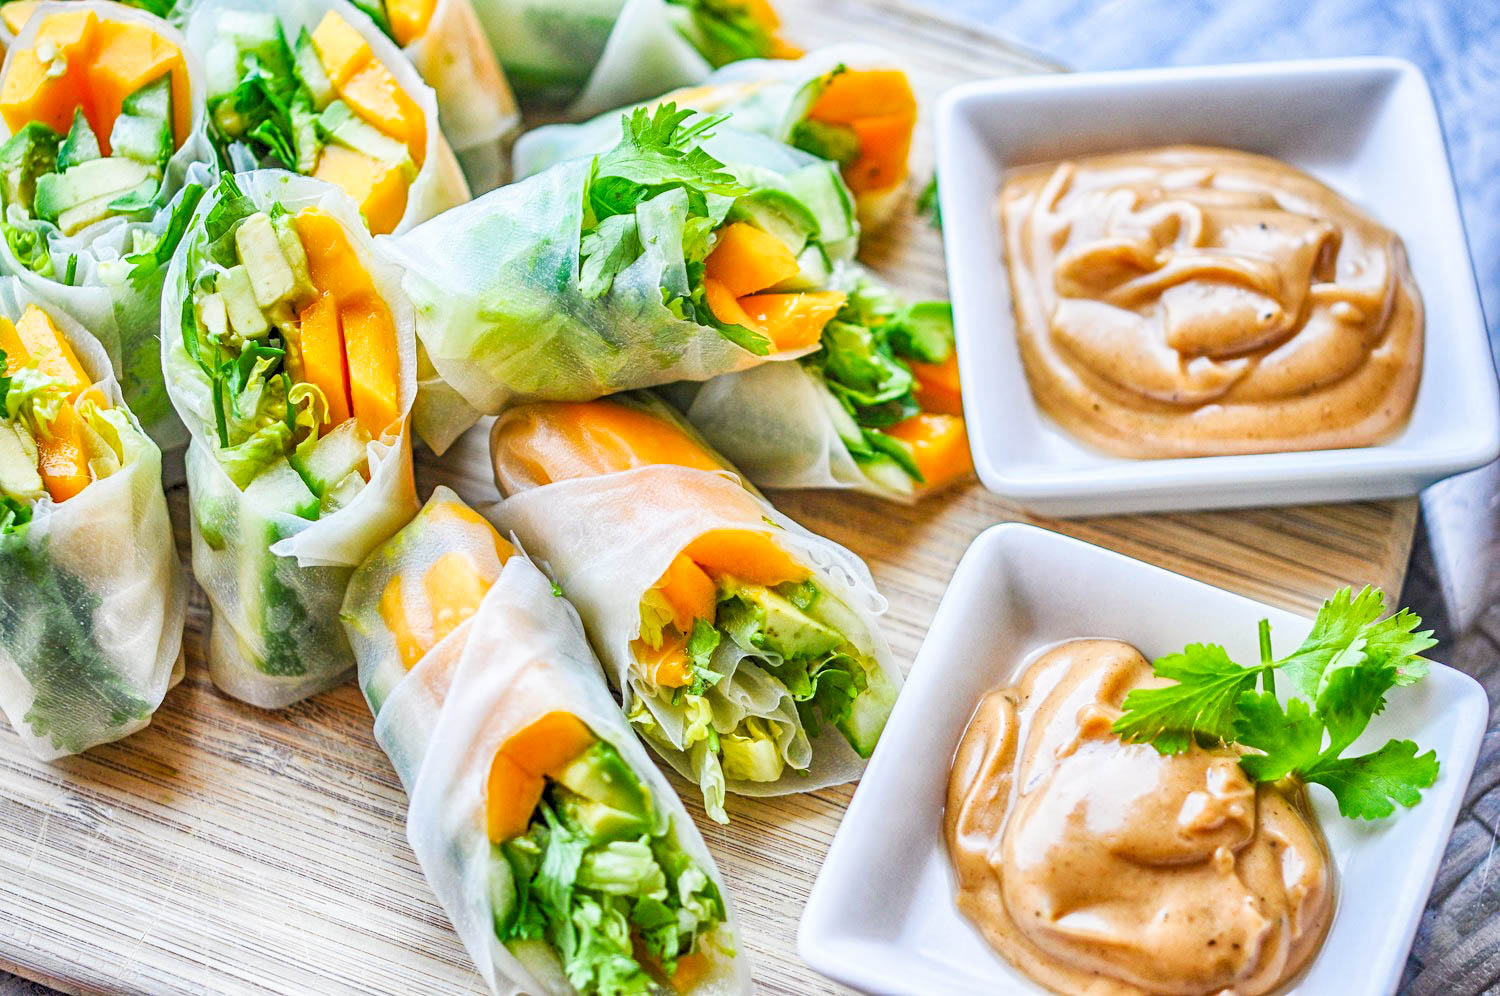 These tropical vegan summer rolls with a peanut dipping sauce are a healthy, colorful, and delicious recipe!